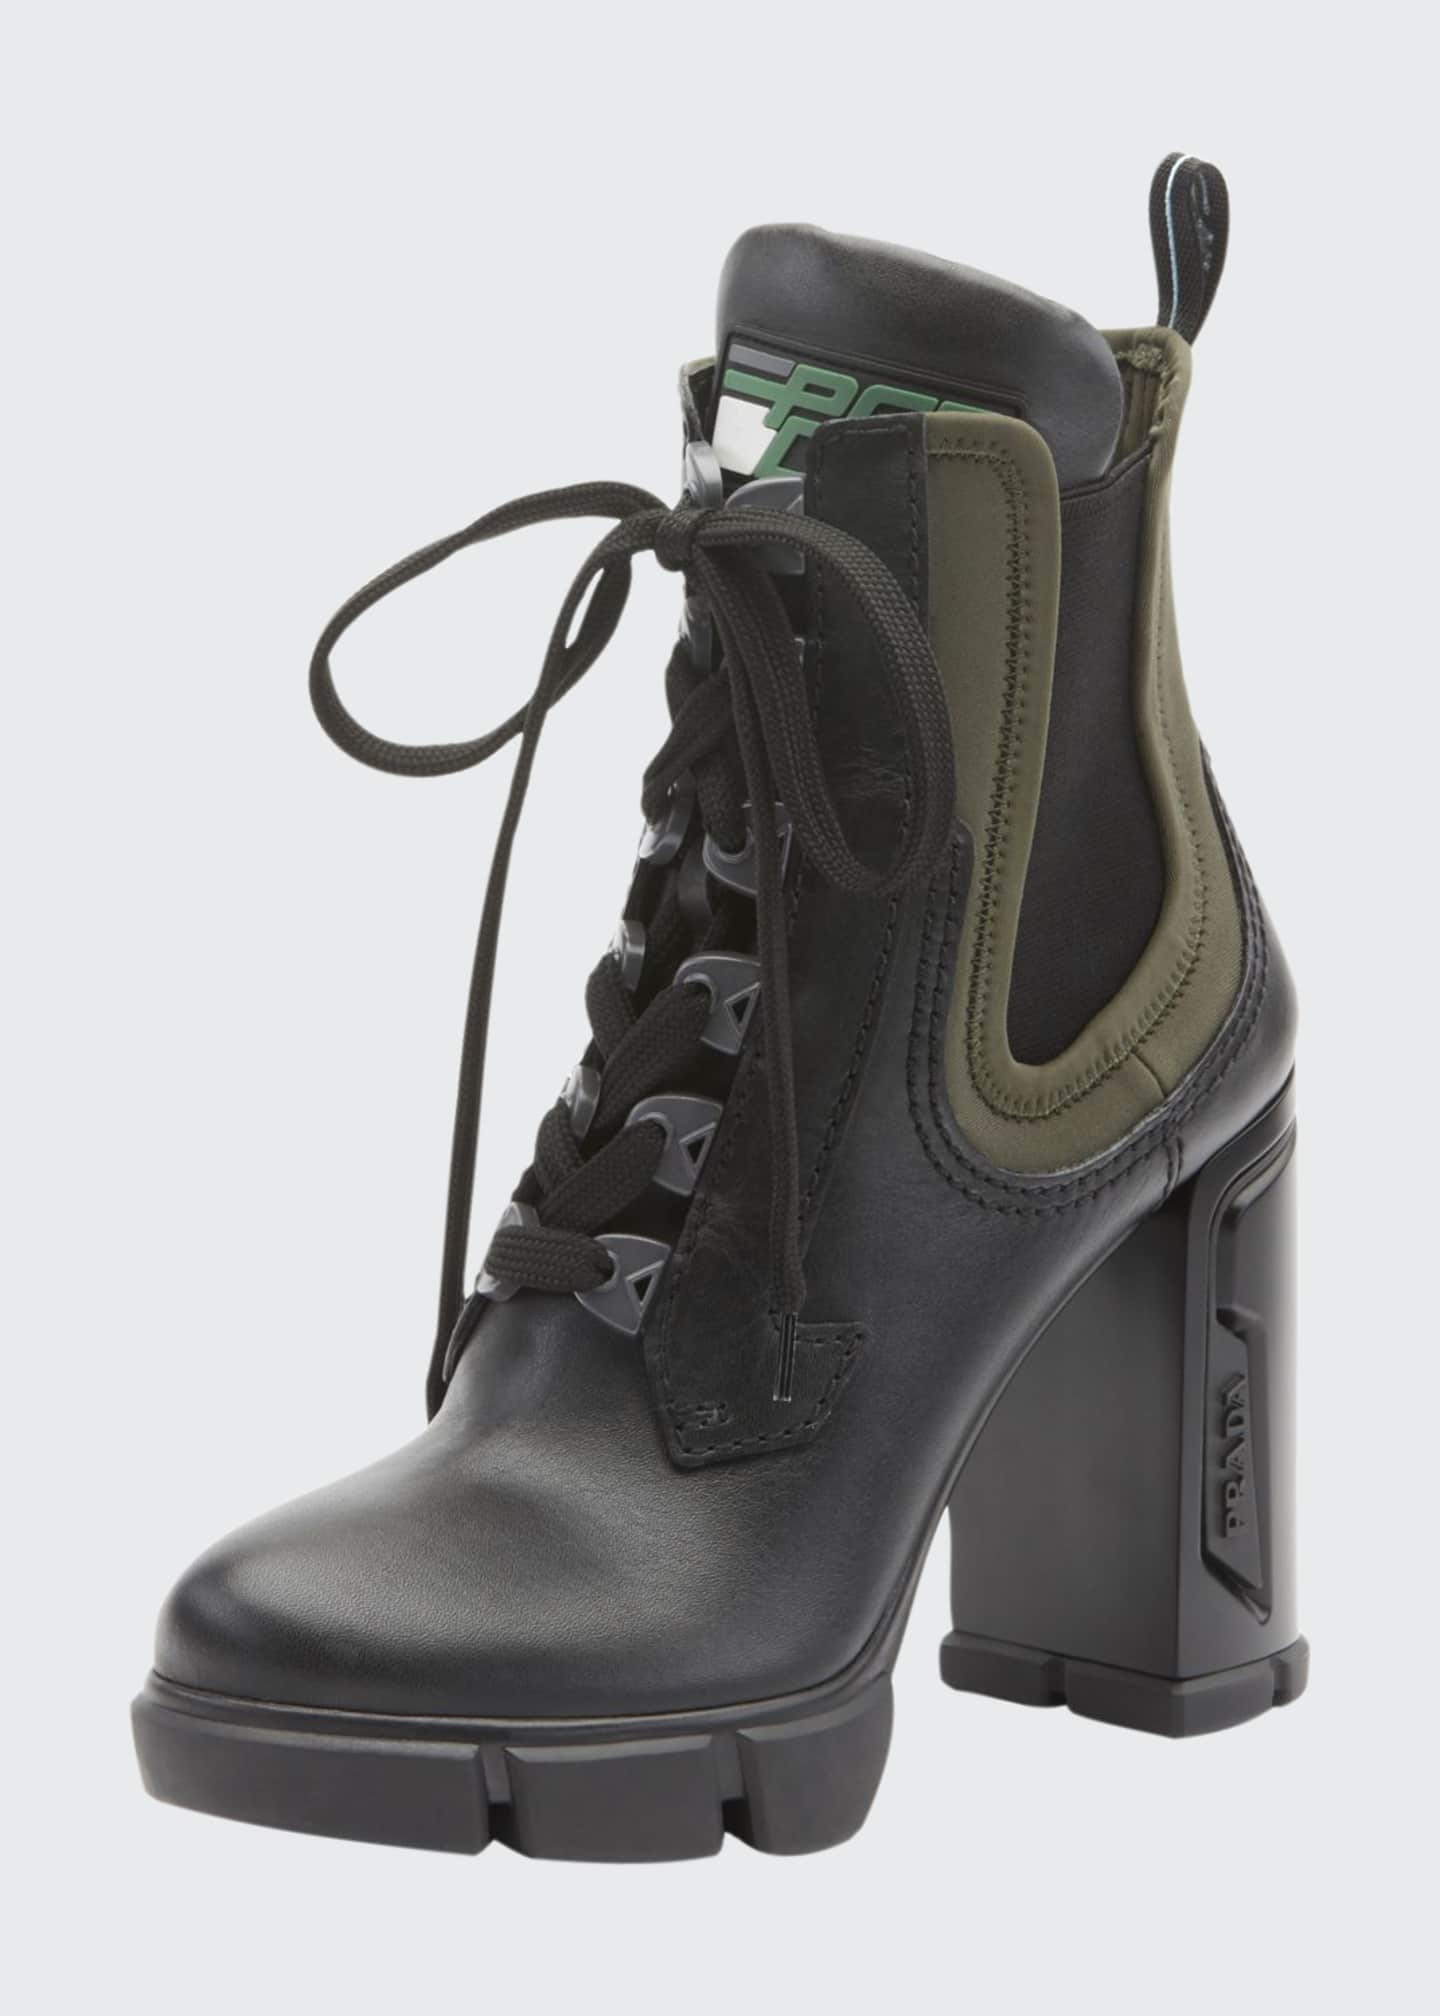 Prada Leather/Stretch Lace-Up Combat Booties